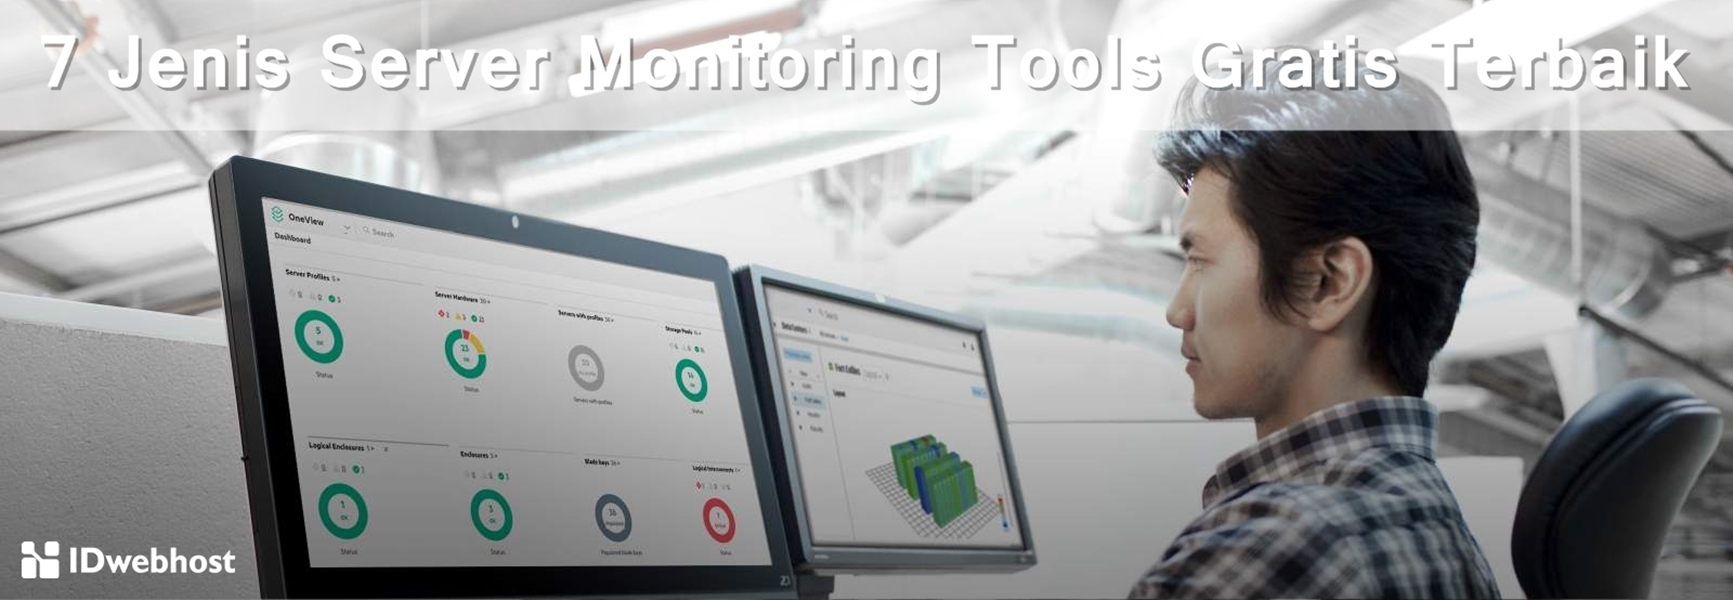 7 Jenis Server Monitoring Tools Gratis Terbaik